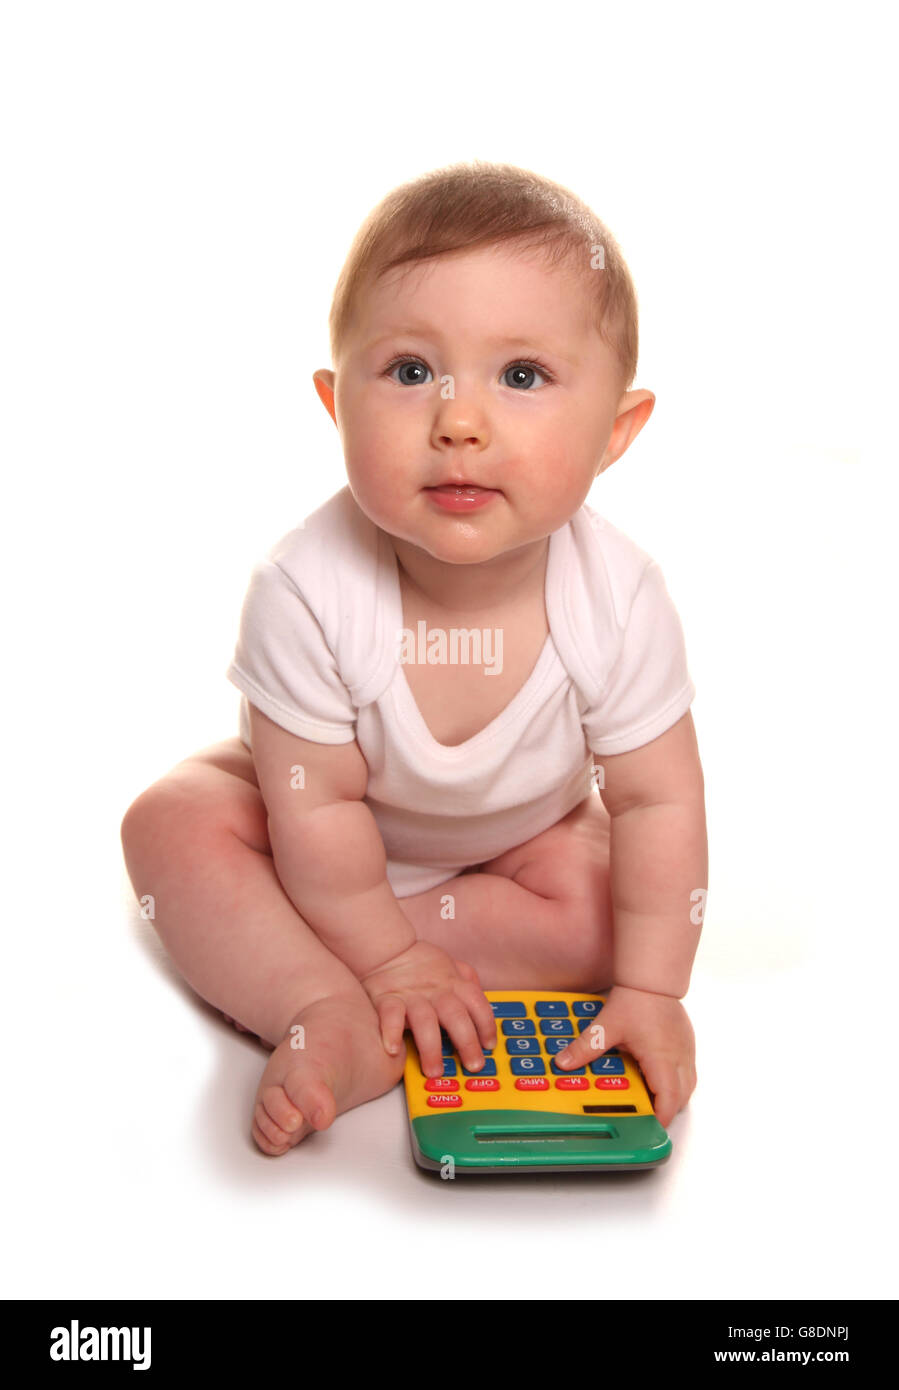 Baby girl playing with a calculator cutout - Stock Image